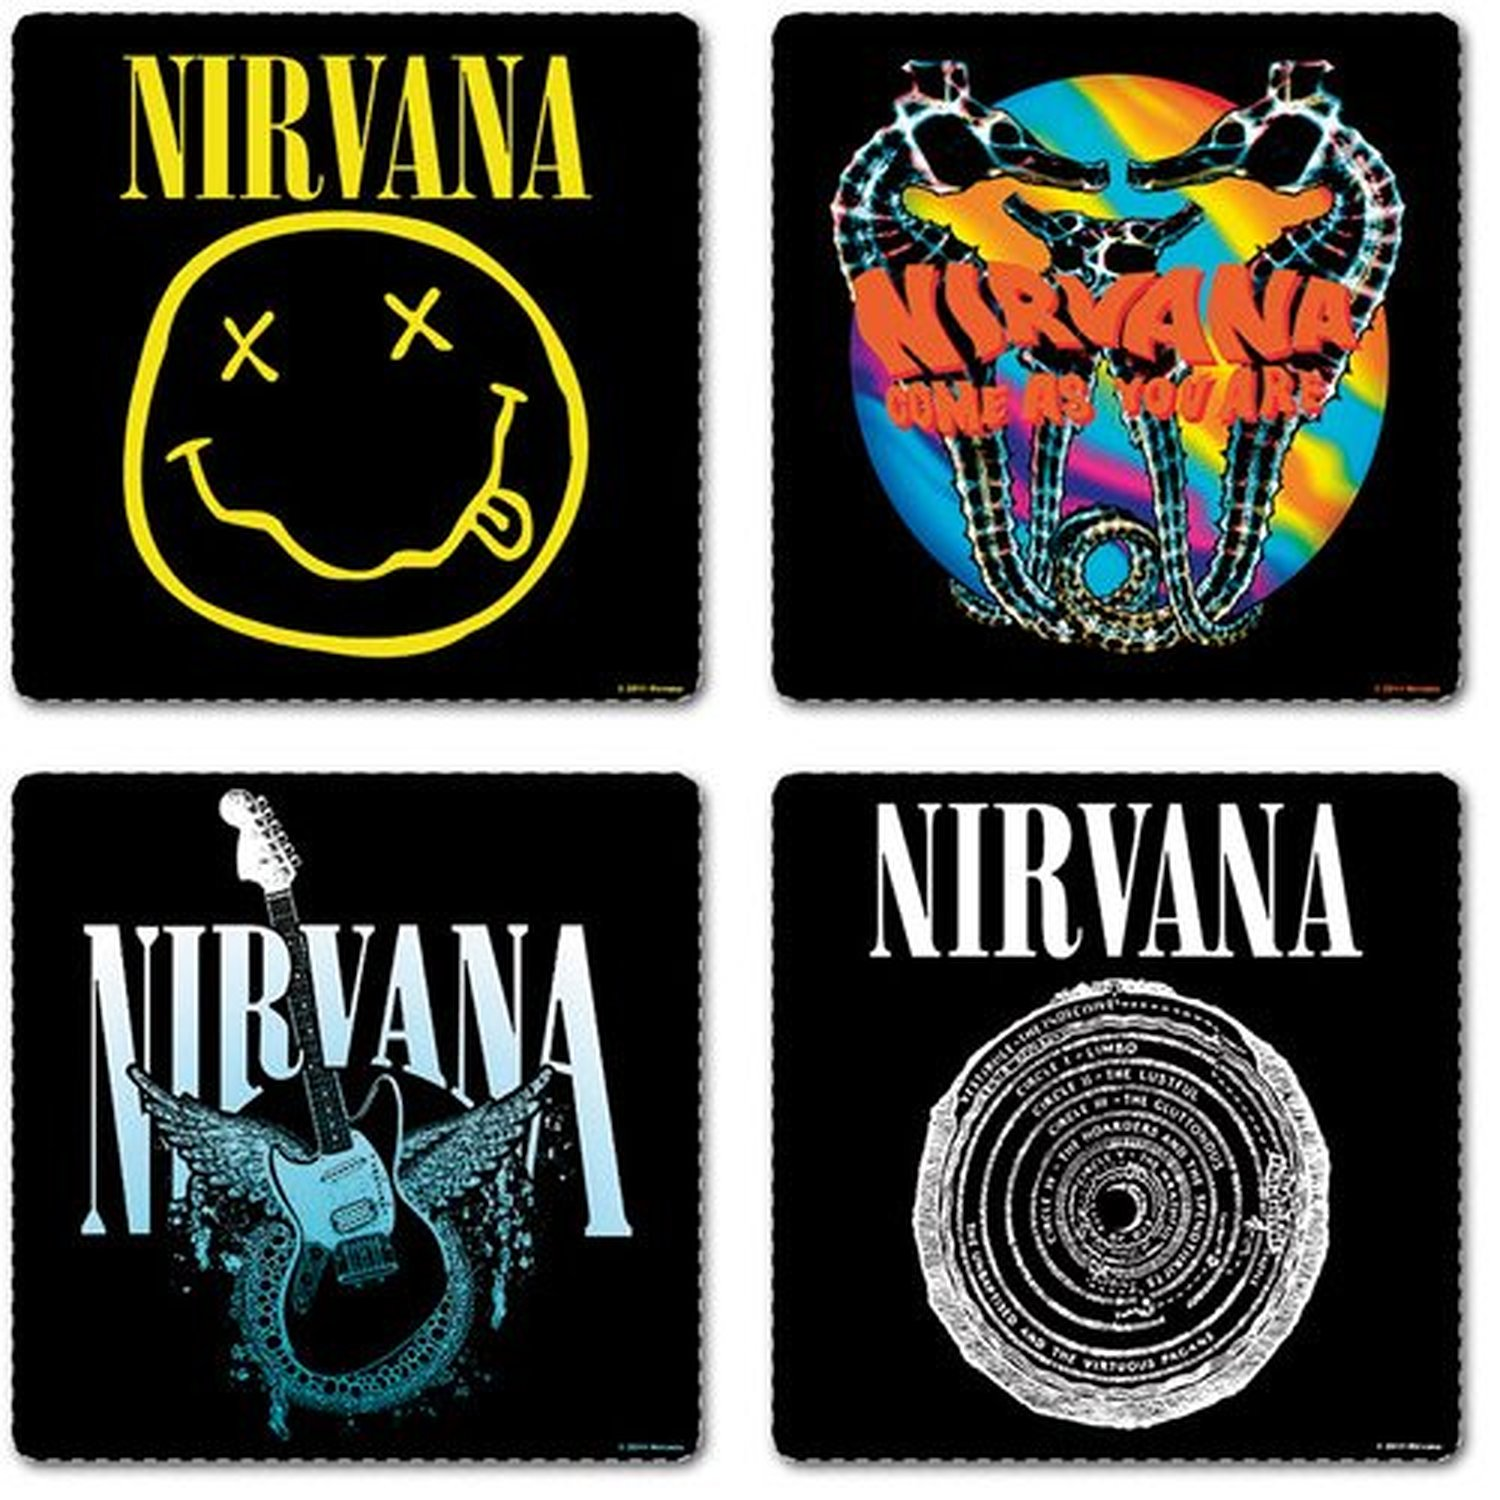 nirvana 4 drinks coaster set 4 album covers logo fan gift